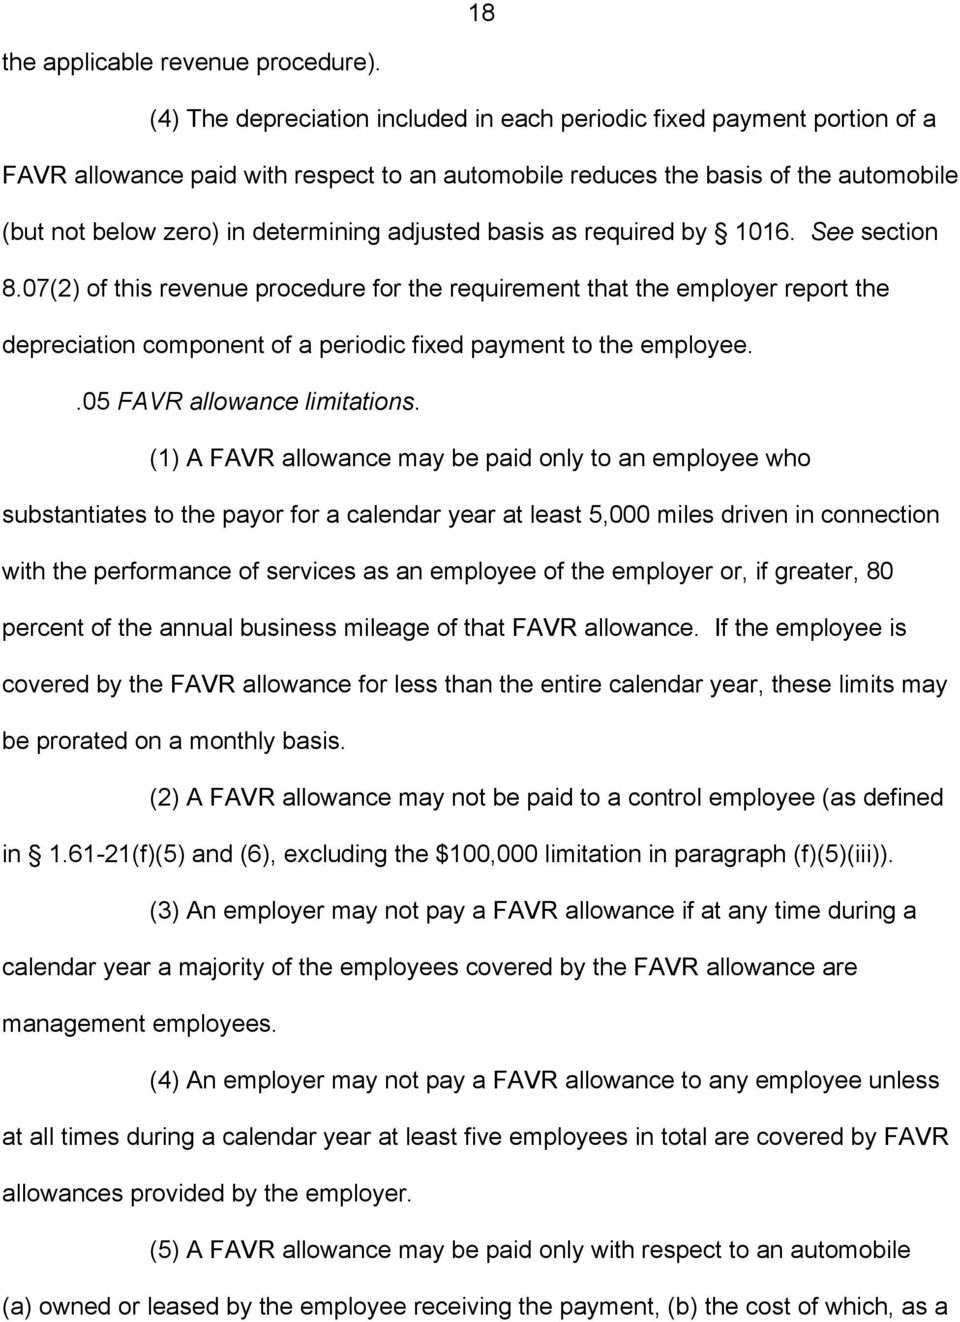 adjusted basis as required by 1016. See section 8.07(2) of this revenue procedure for the requirement that the employer report the depreciation component of a periodic fixed payment to the employee.